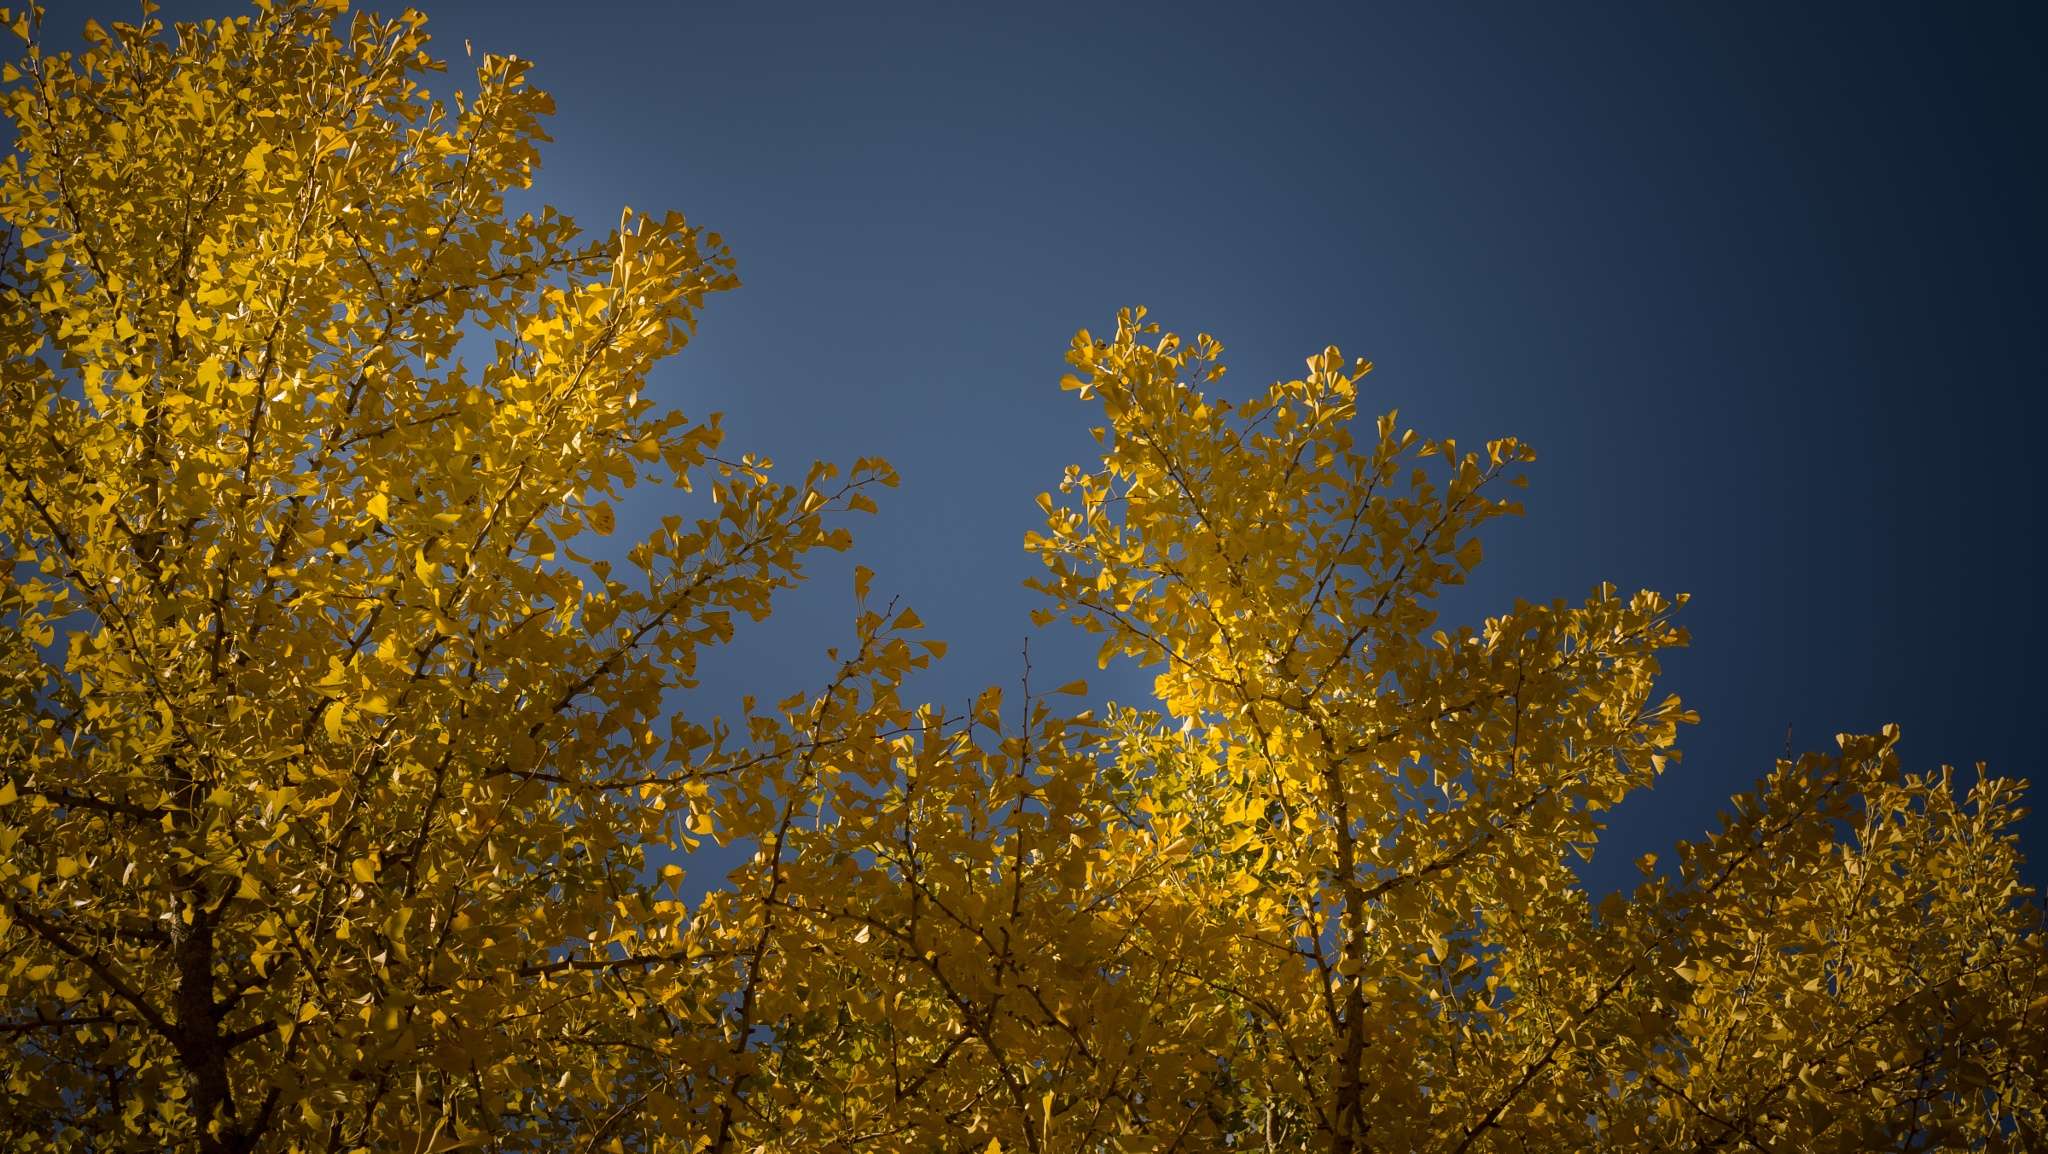 Autumn leaves of yellow by muteking